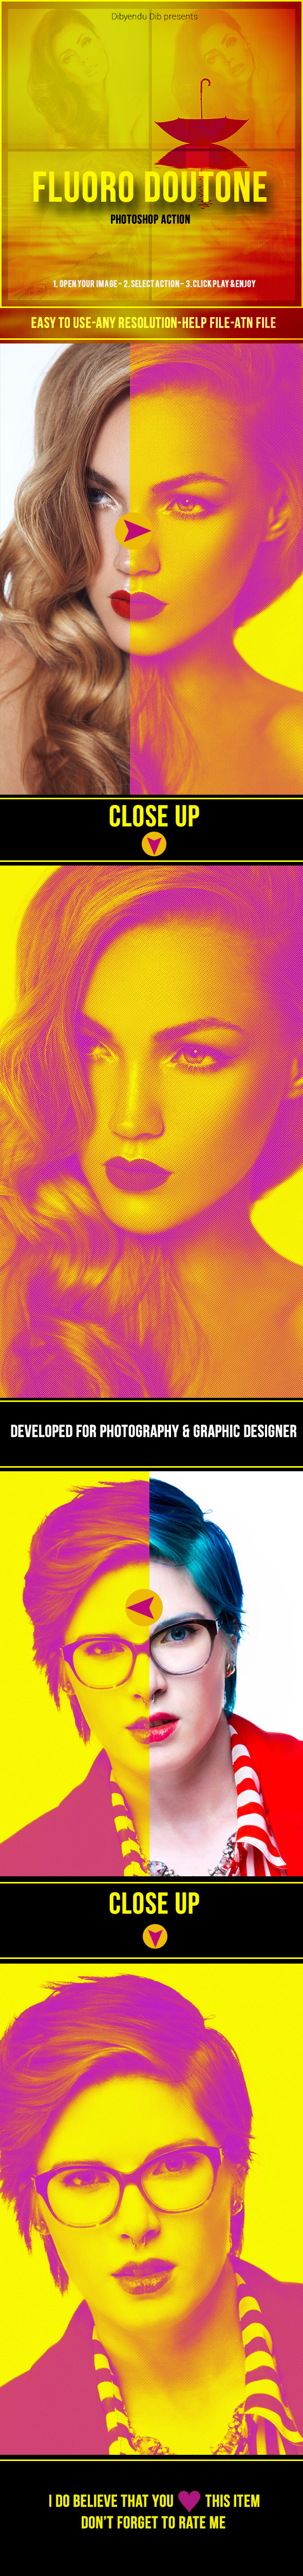 Fluoro Duotone - Photo Effects Actions